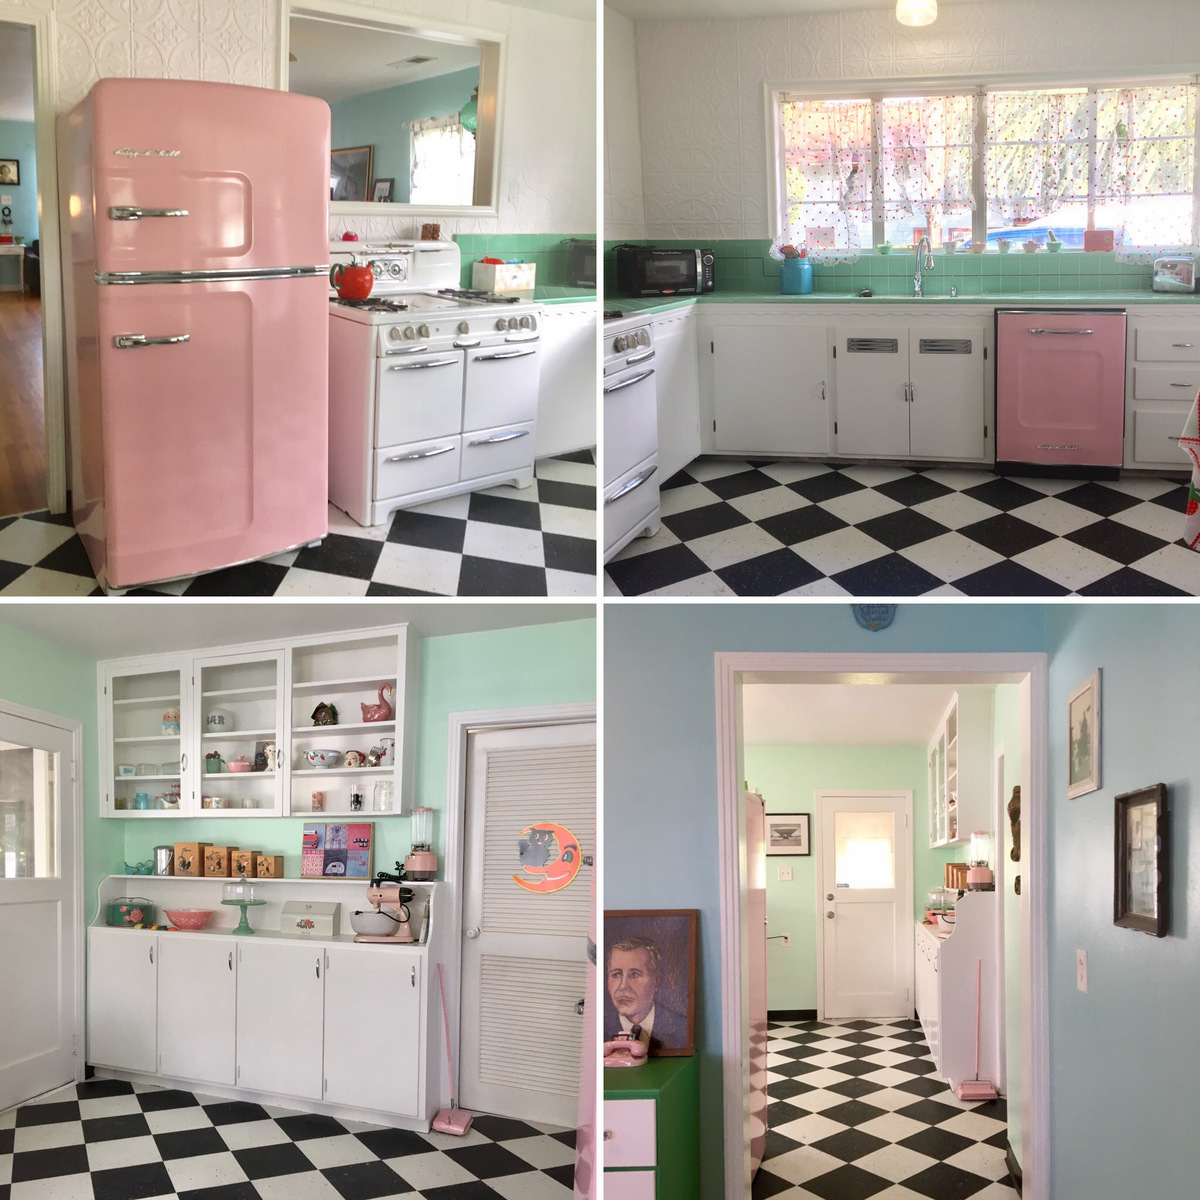 Kitchen Collection Llc 28 Images The Kitchen Collection Llc 28 Images The Kitchen The